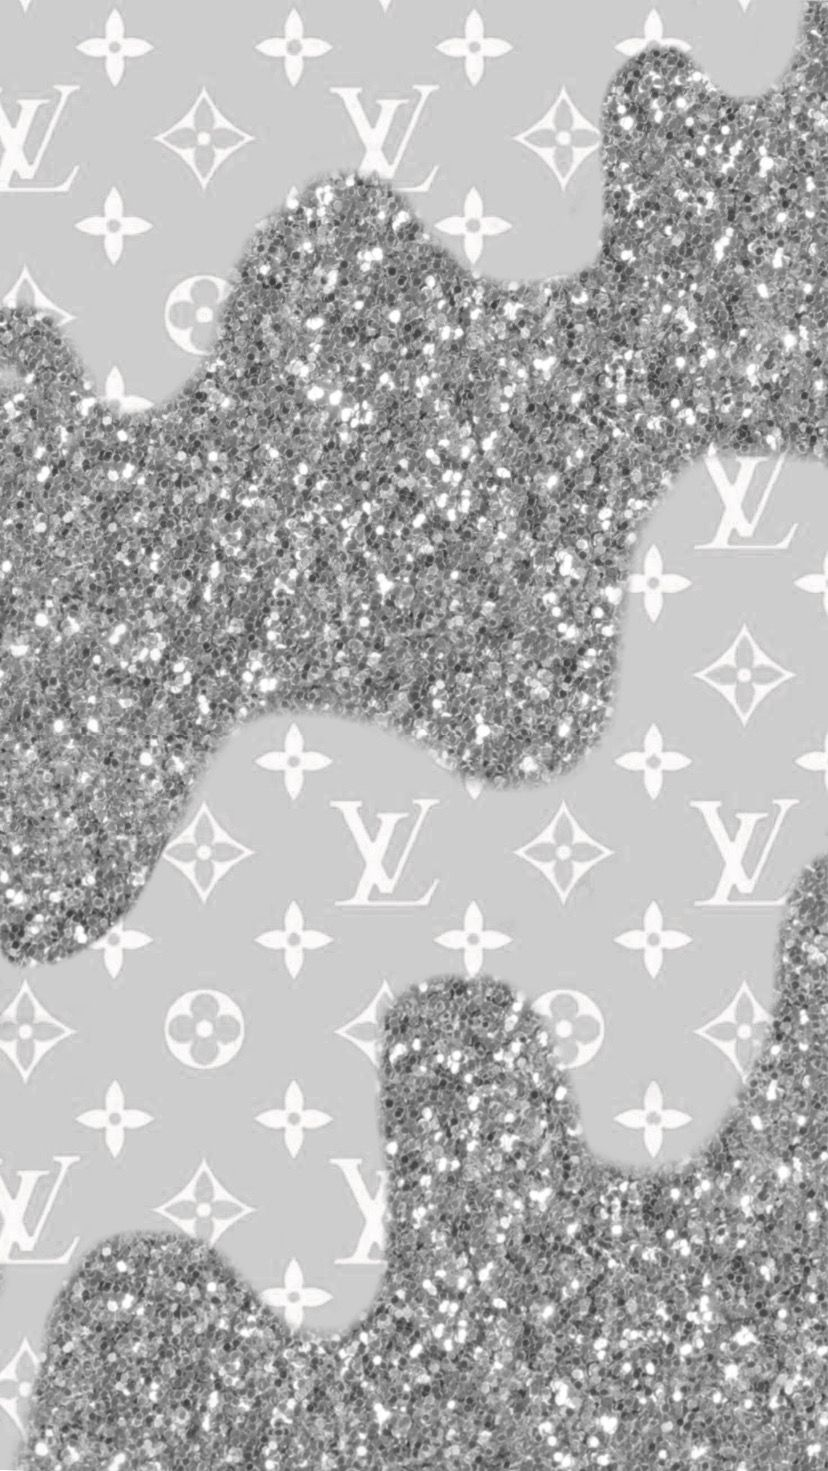 drippy Louis Vuitton